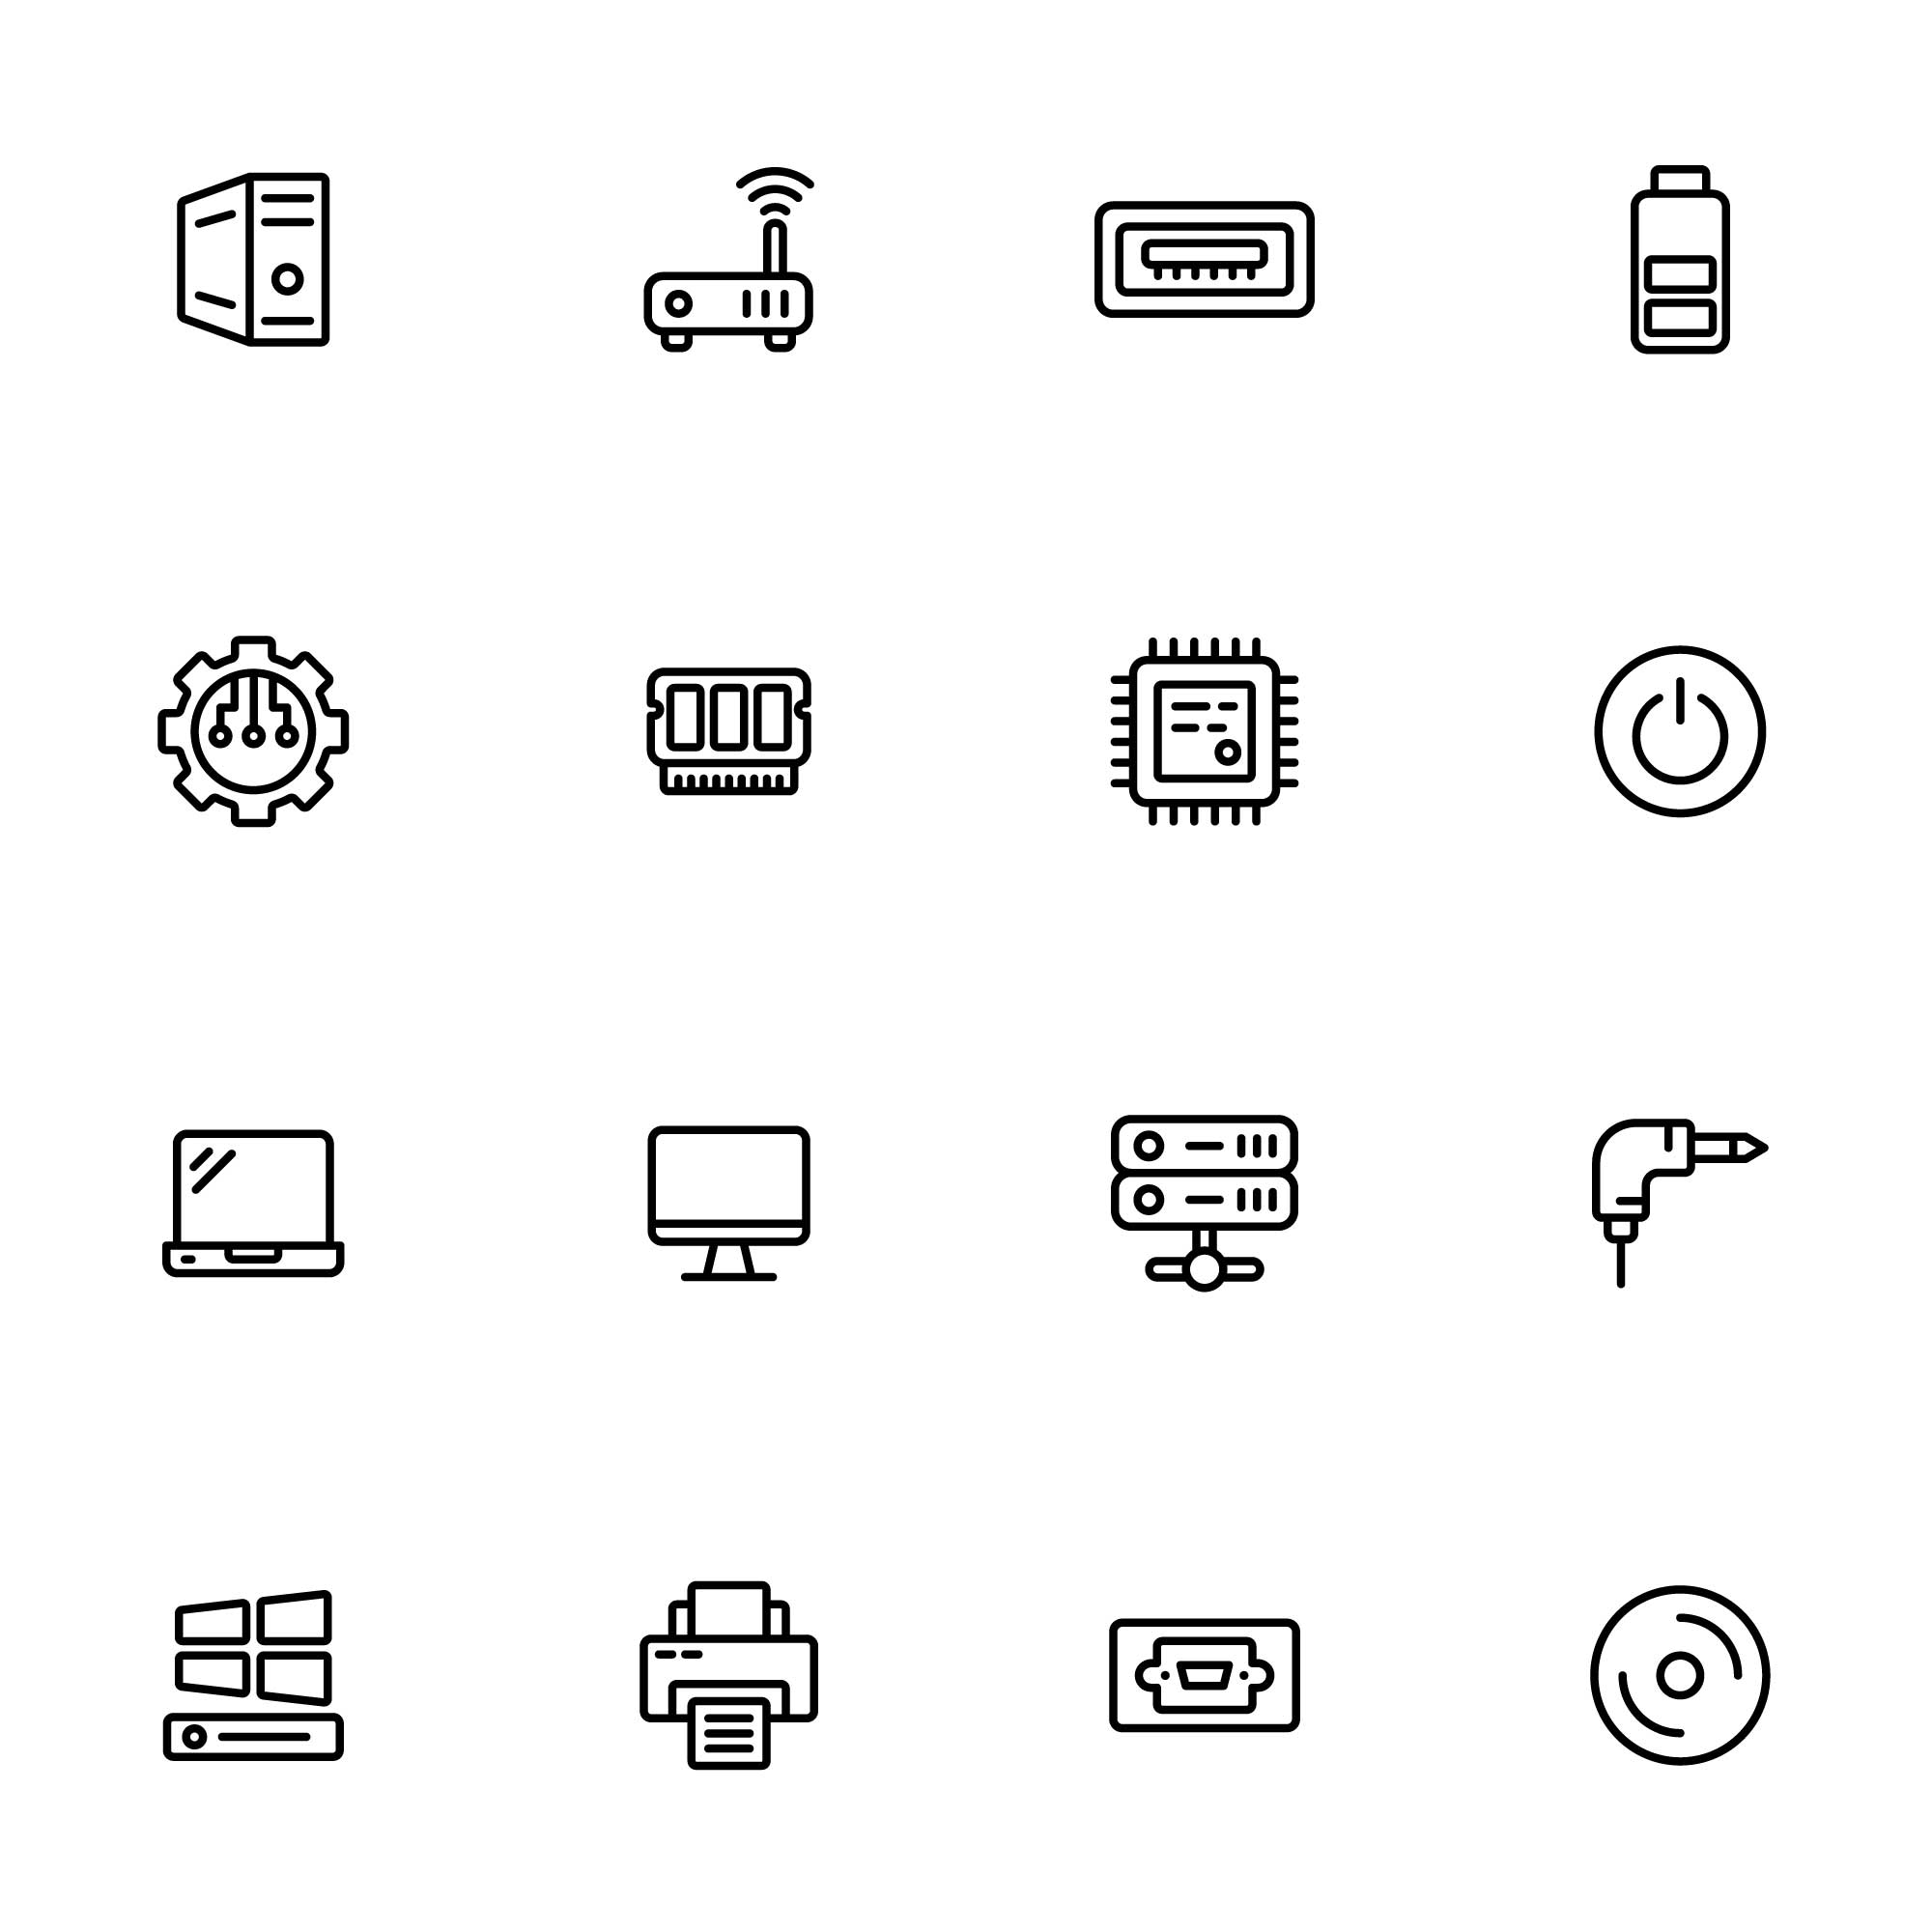 Computer Hardware Icons Part 02